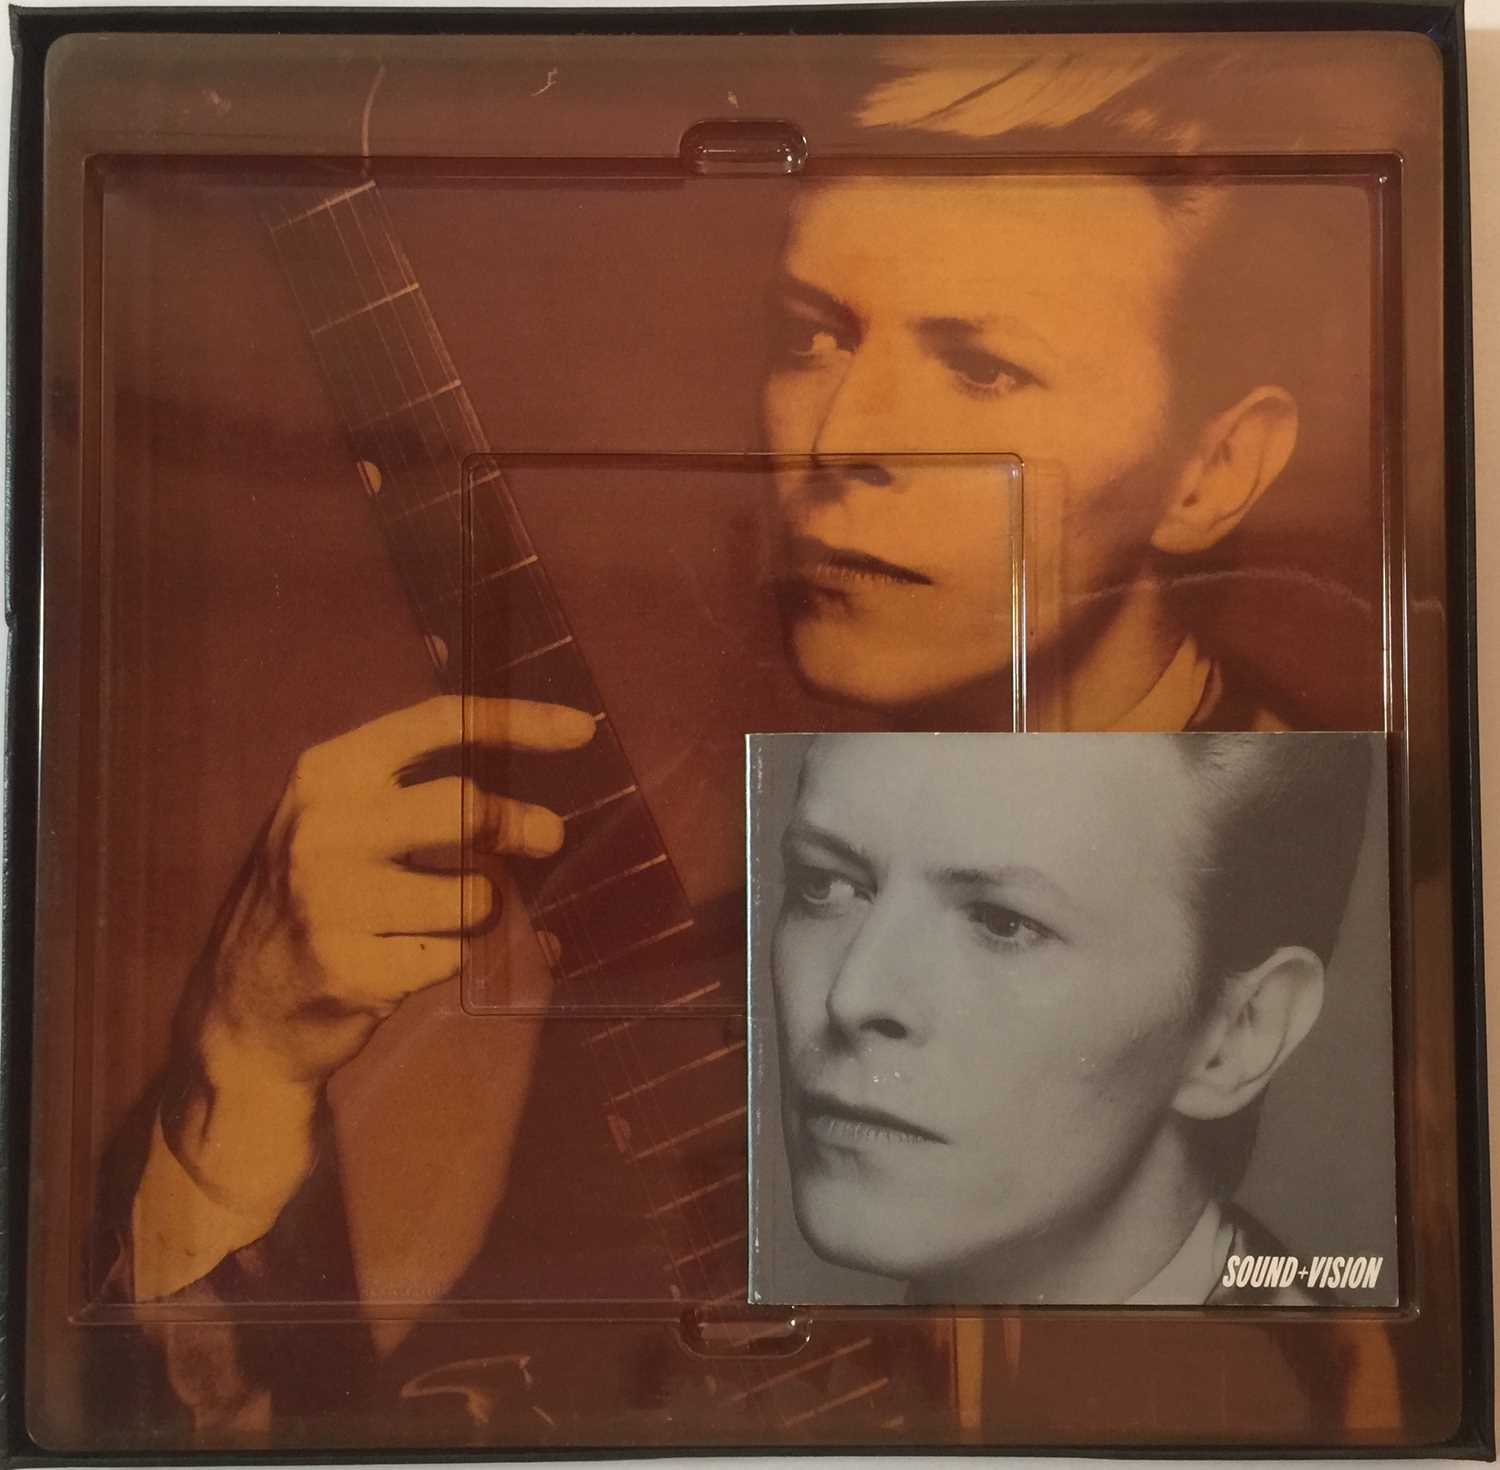 DAVID BOWIE - LIMITED EDITION CD BOX SET RELEASES - Image 8 of 8